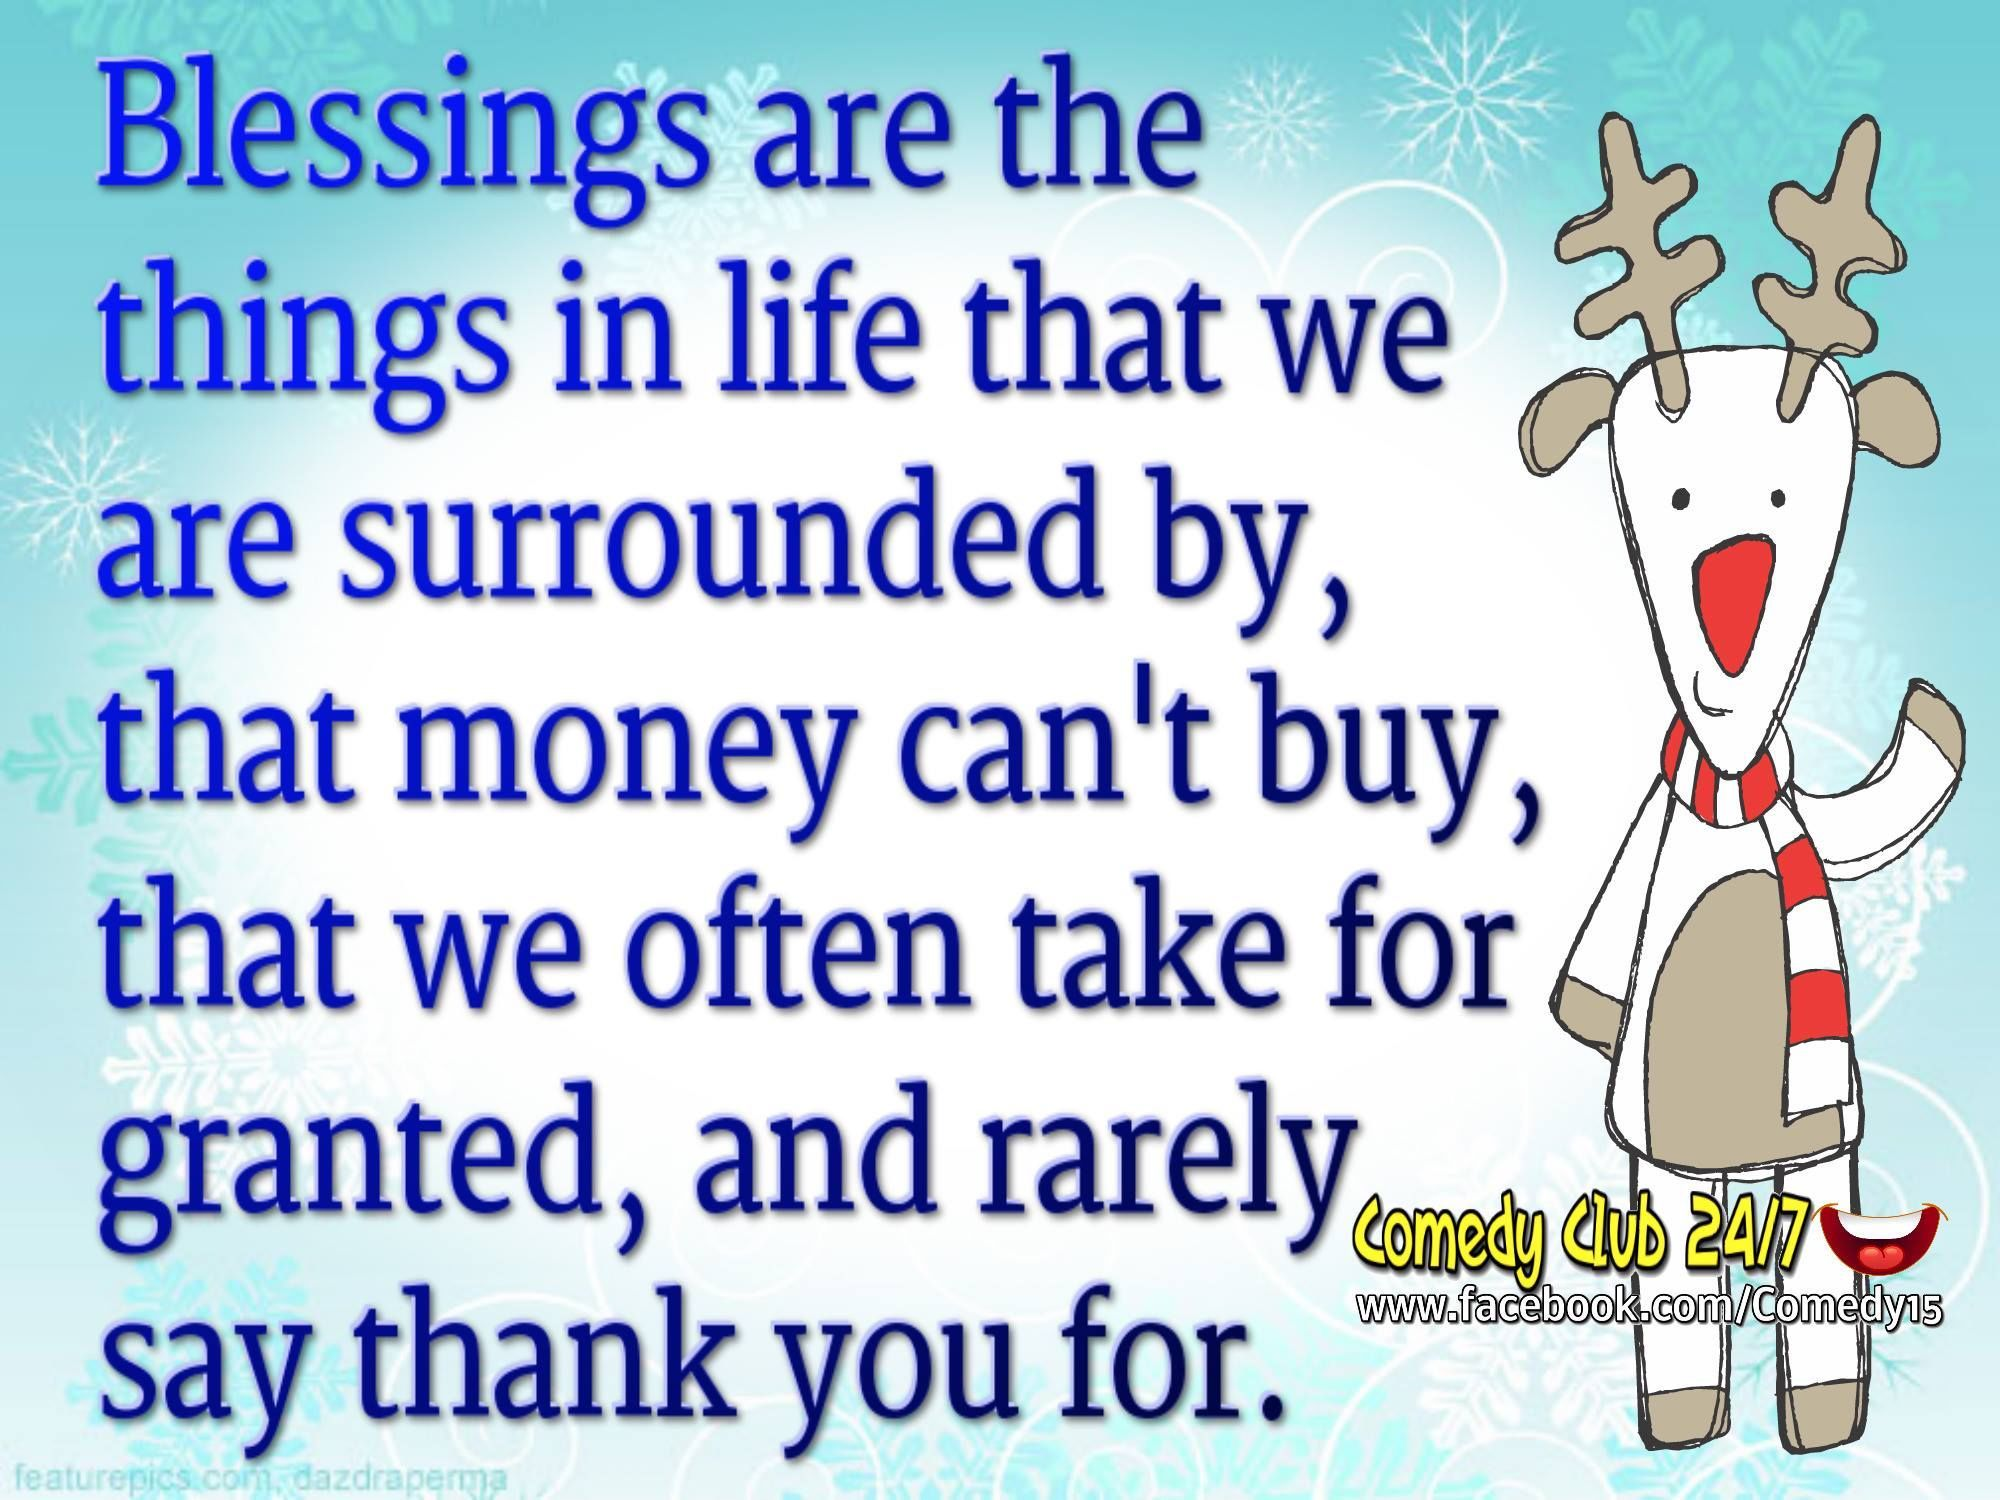 Blessings Christmas Christmas Quotes Family Christmas Quotes Merry  Christmas Quotes Christmas Blessings Christmas Quotes For Friends